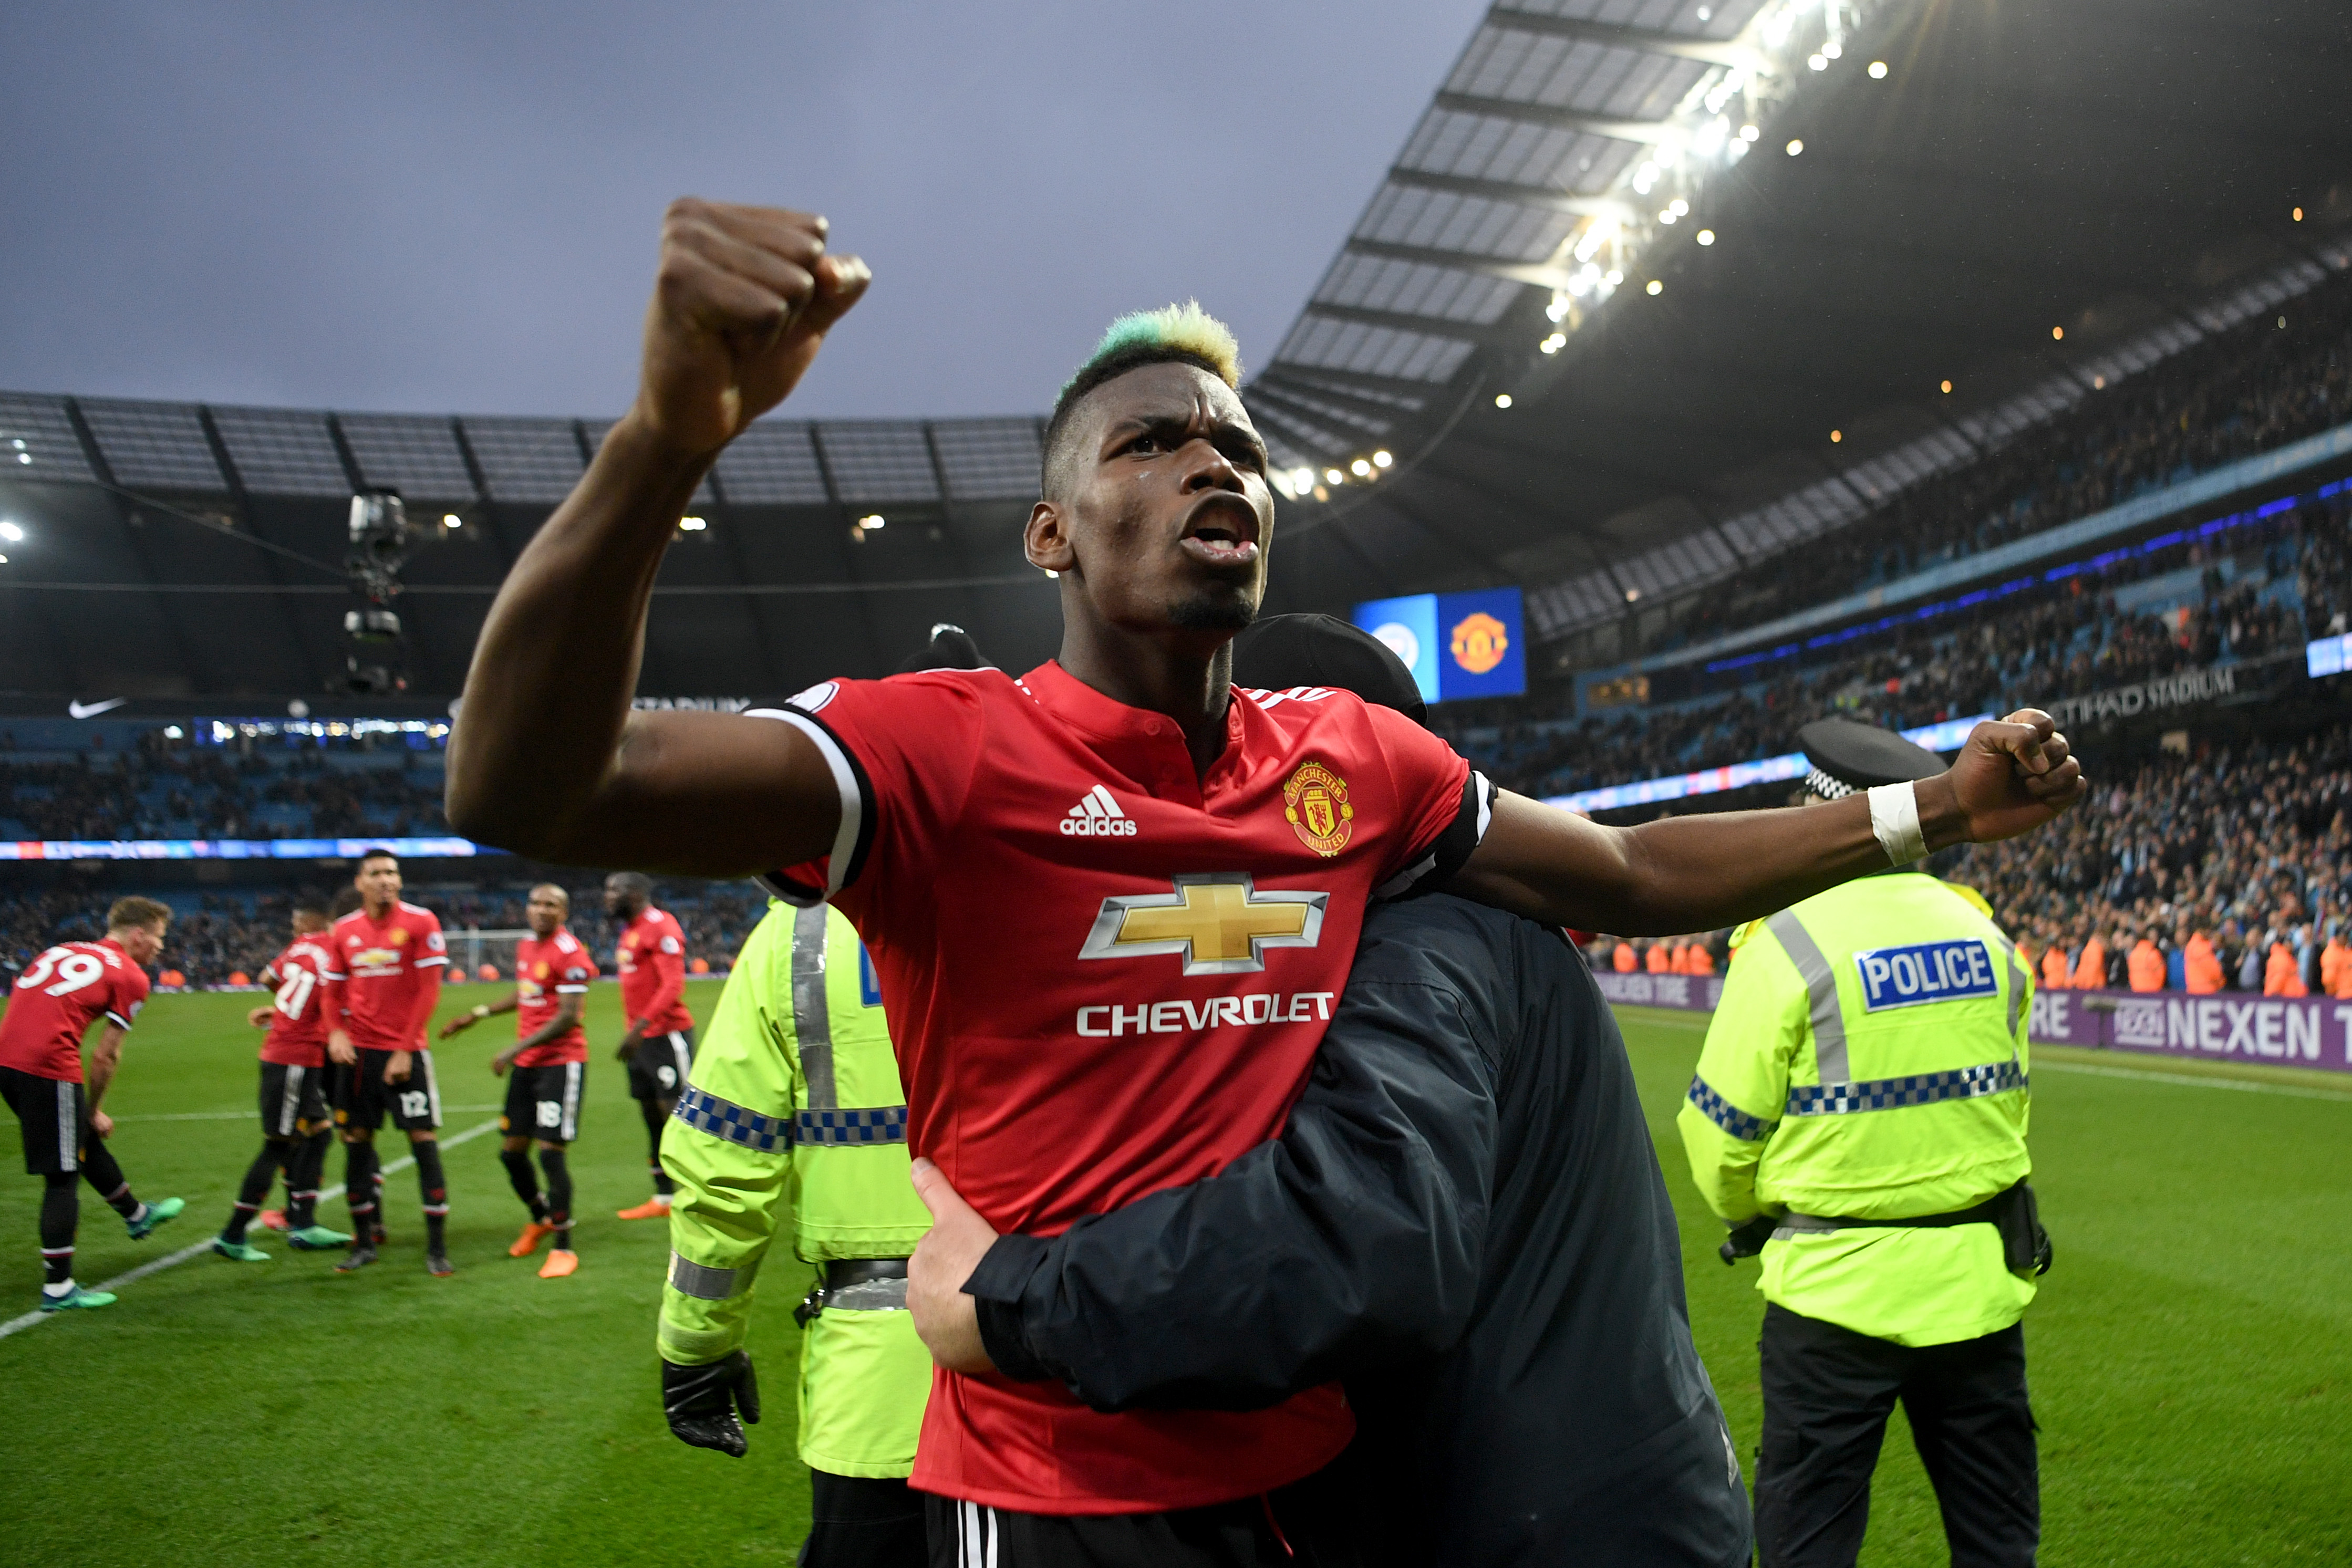 bafdec7a693e2 Manchester United fans on whether the club should sell or keep Paul Pogba